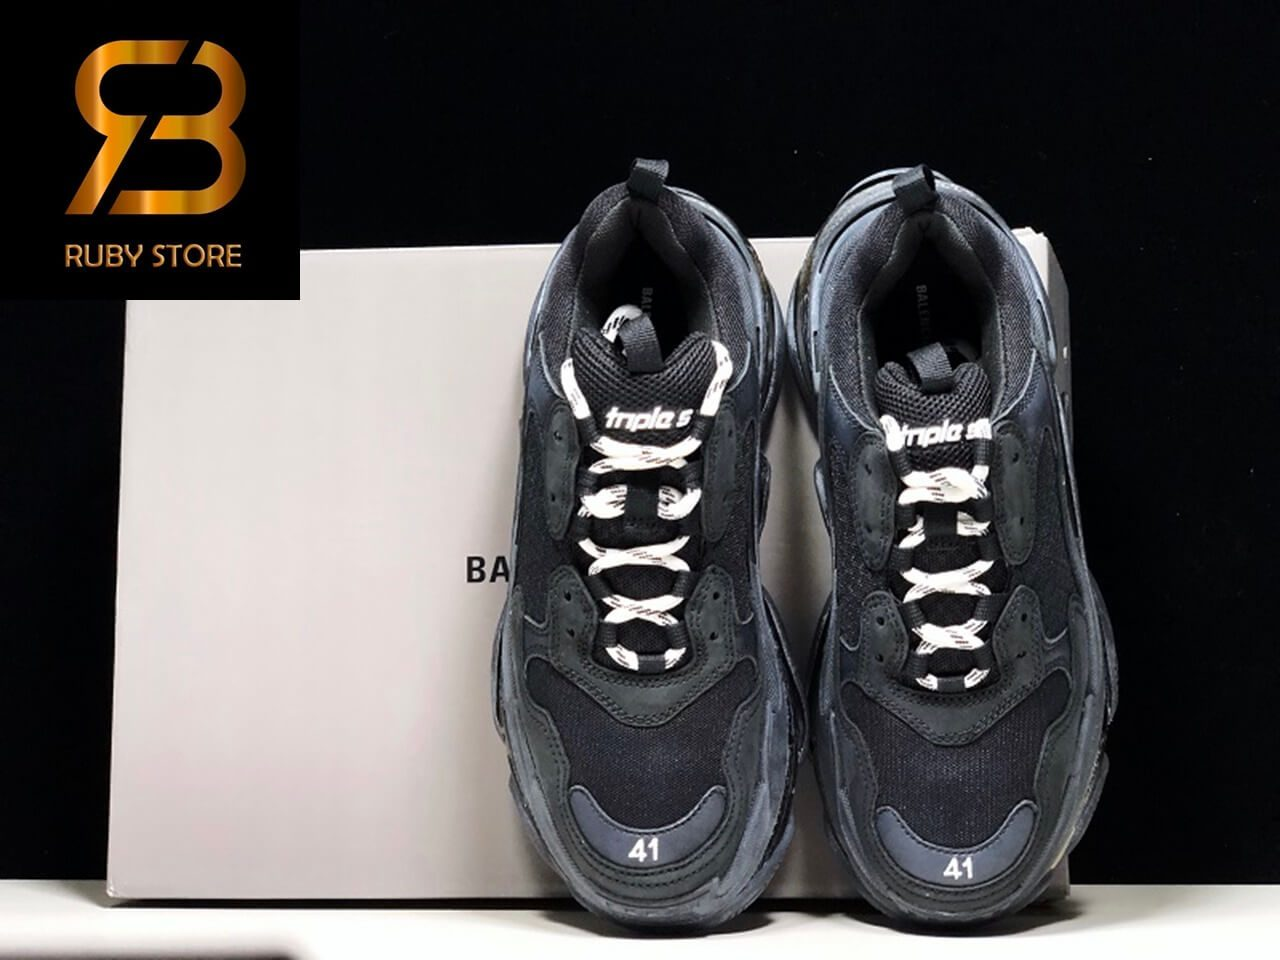 giày balenciaga triple s clear sole black replica 1:1 siêu cấp